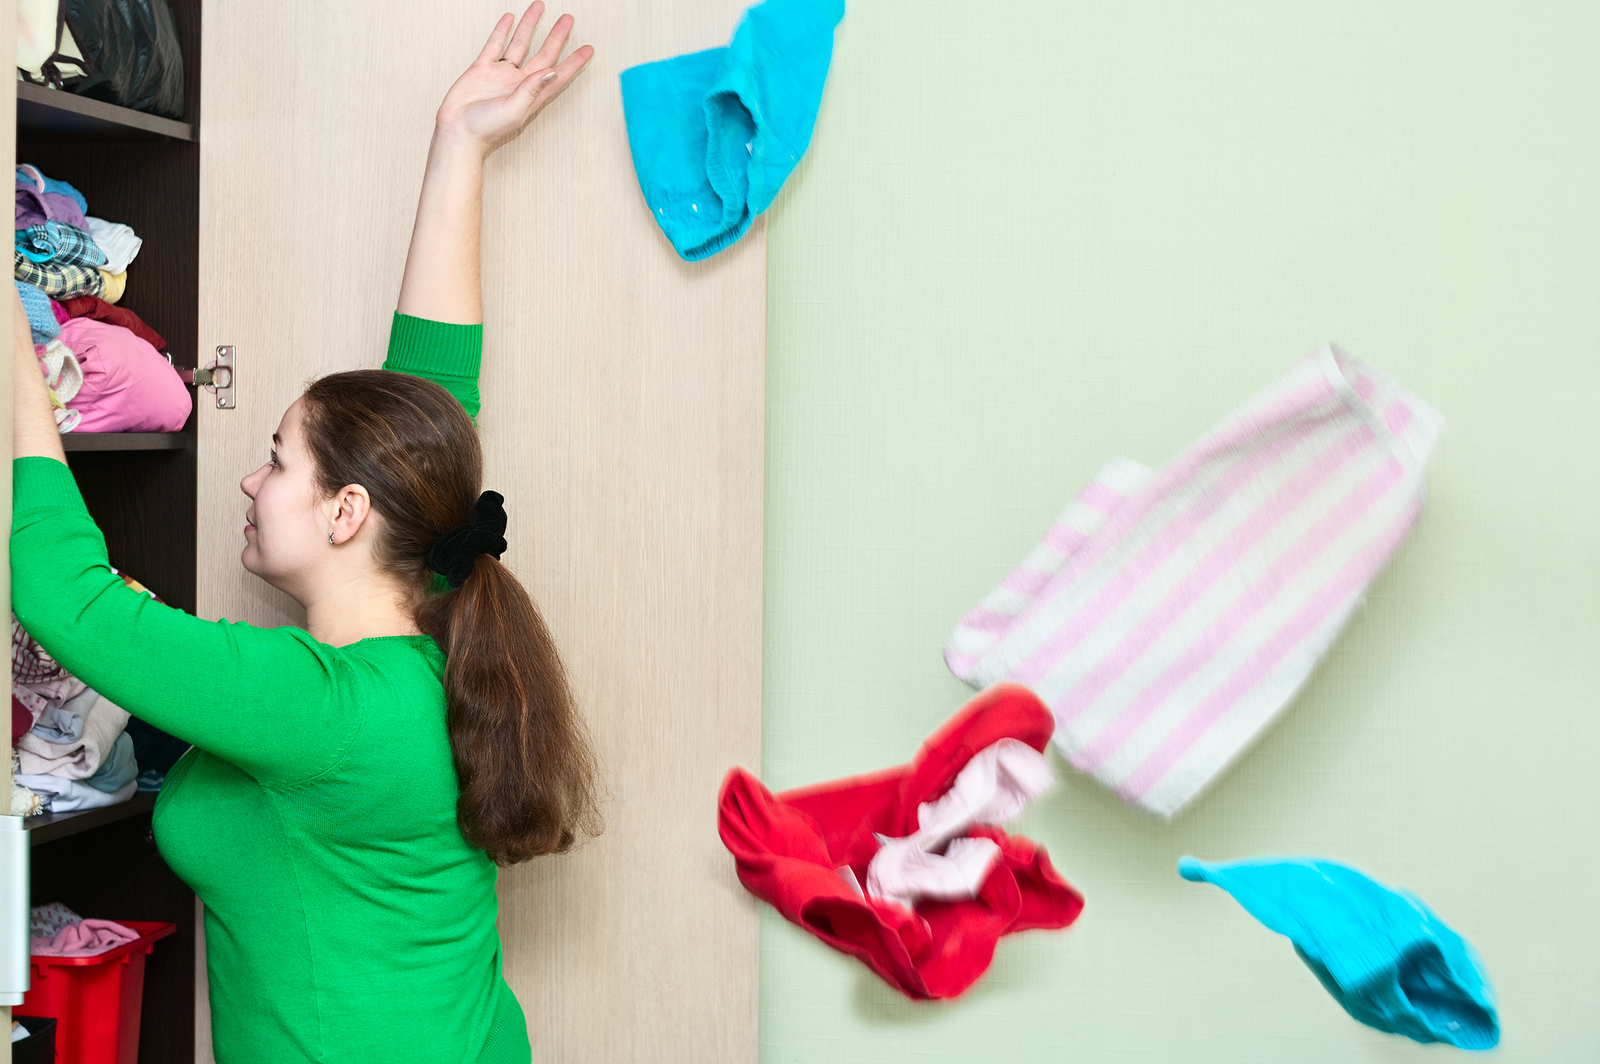 4 Easy Steps to Organize Your Closet: Clean It Out